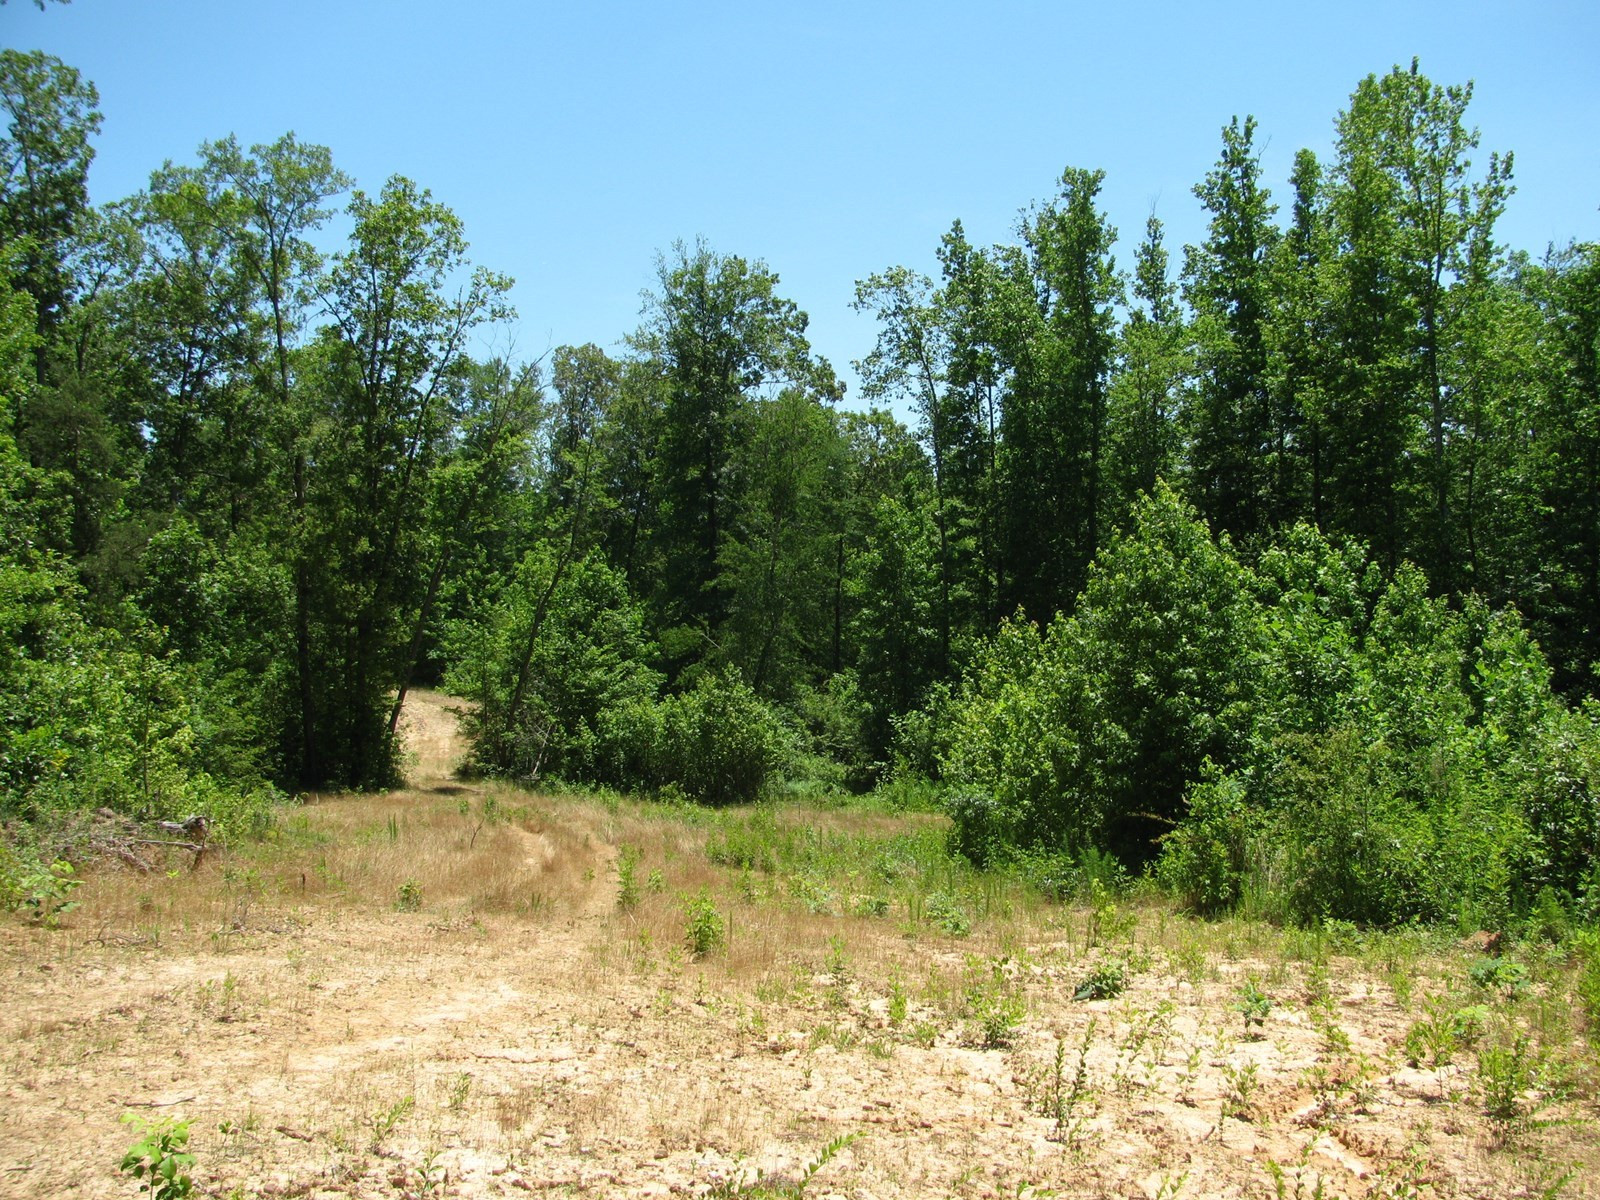 LAND FOR SALE IN MCNAIRY COUNTY, TN, CREEK, SPRING, HUNTING